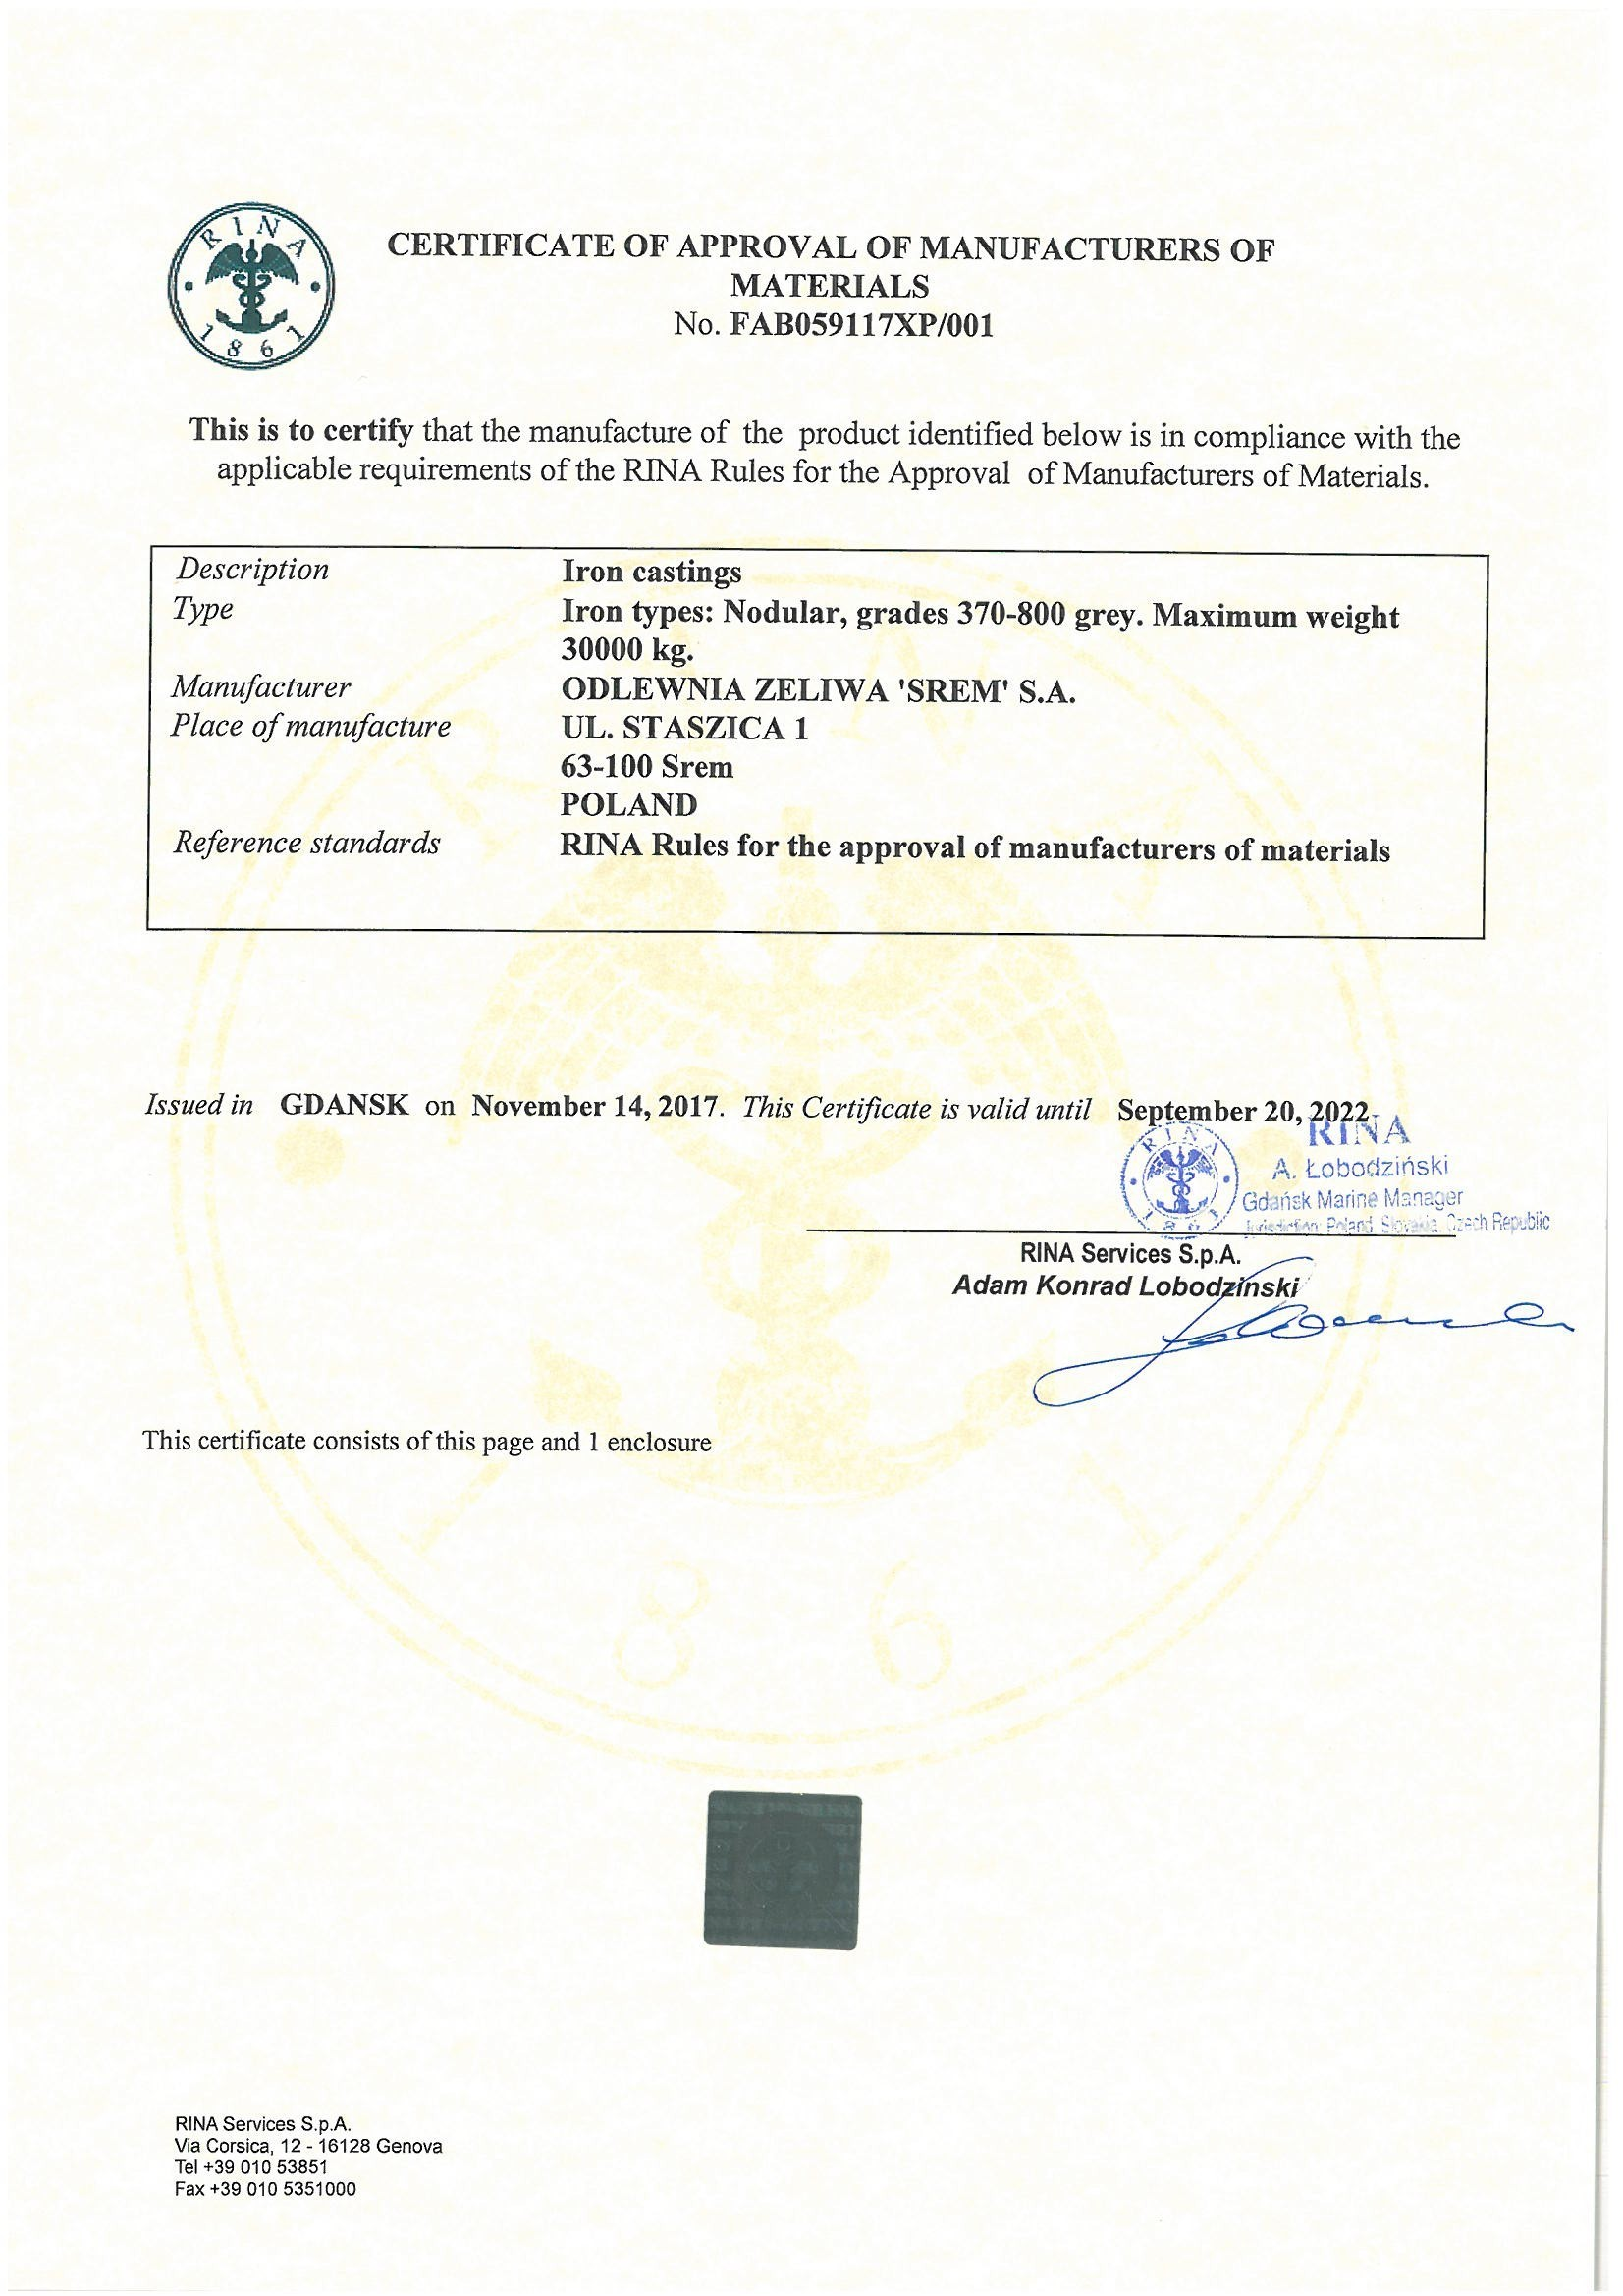 Certificate of Approval of Manufacturers of Materials